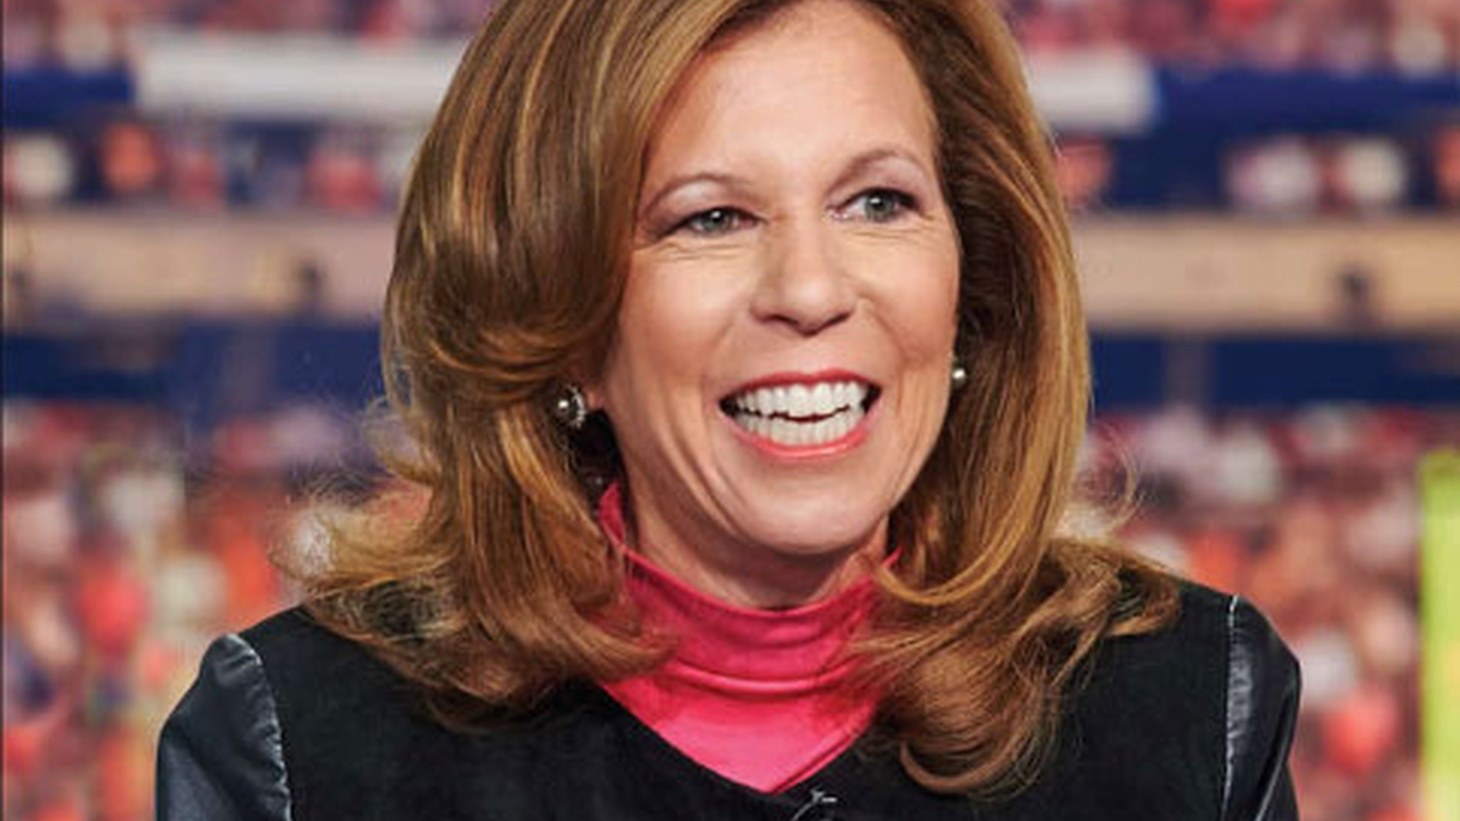 Get the latest NFL news from Amy Trask from CBS Sports!